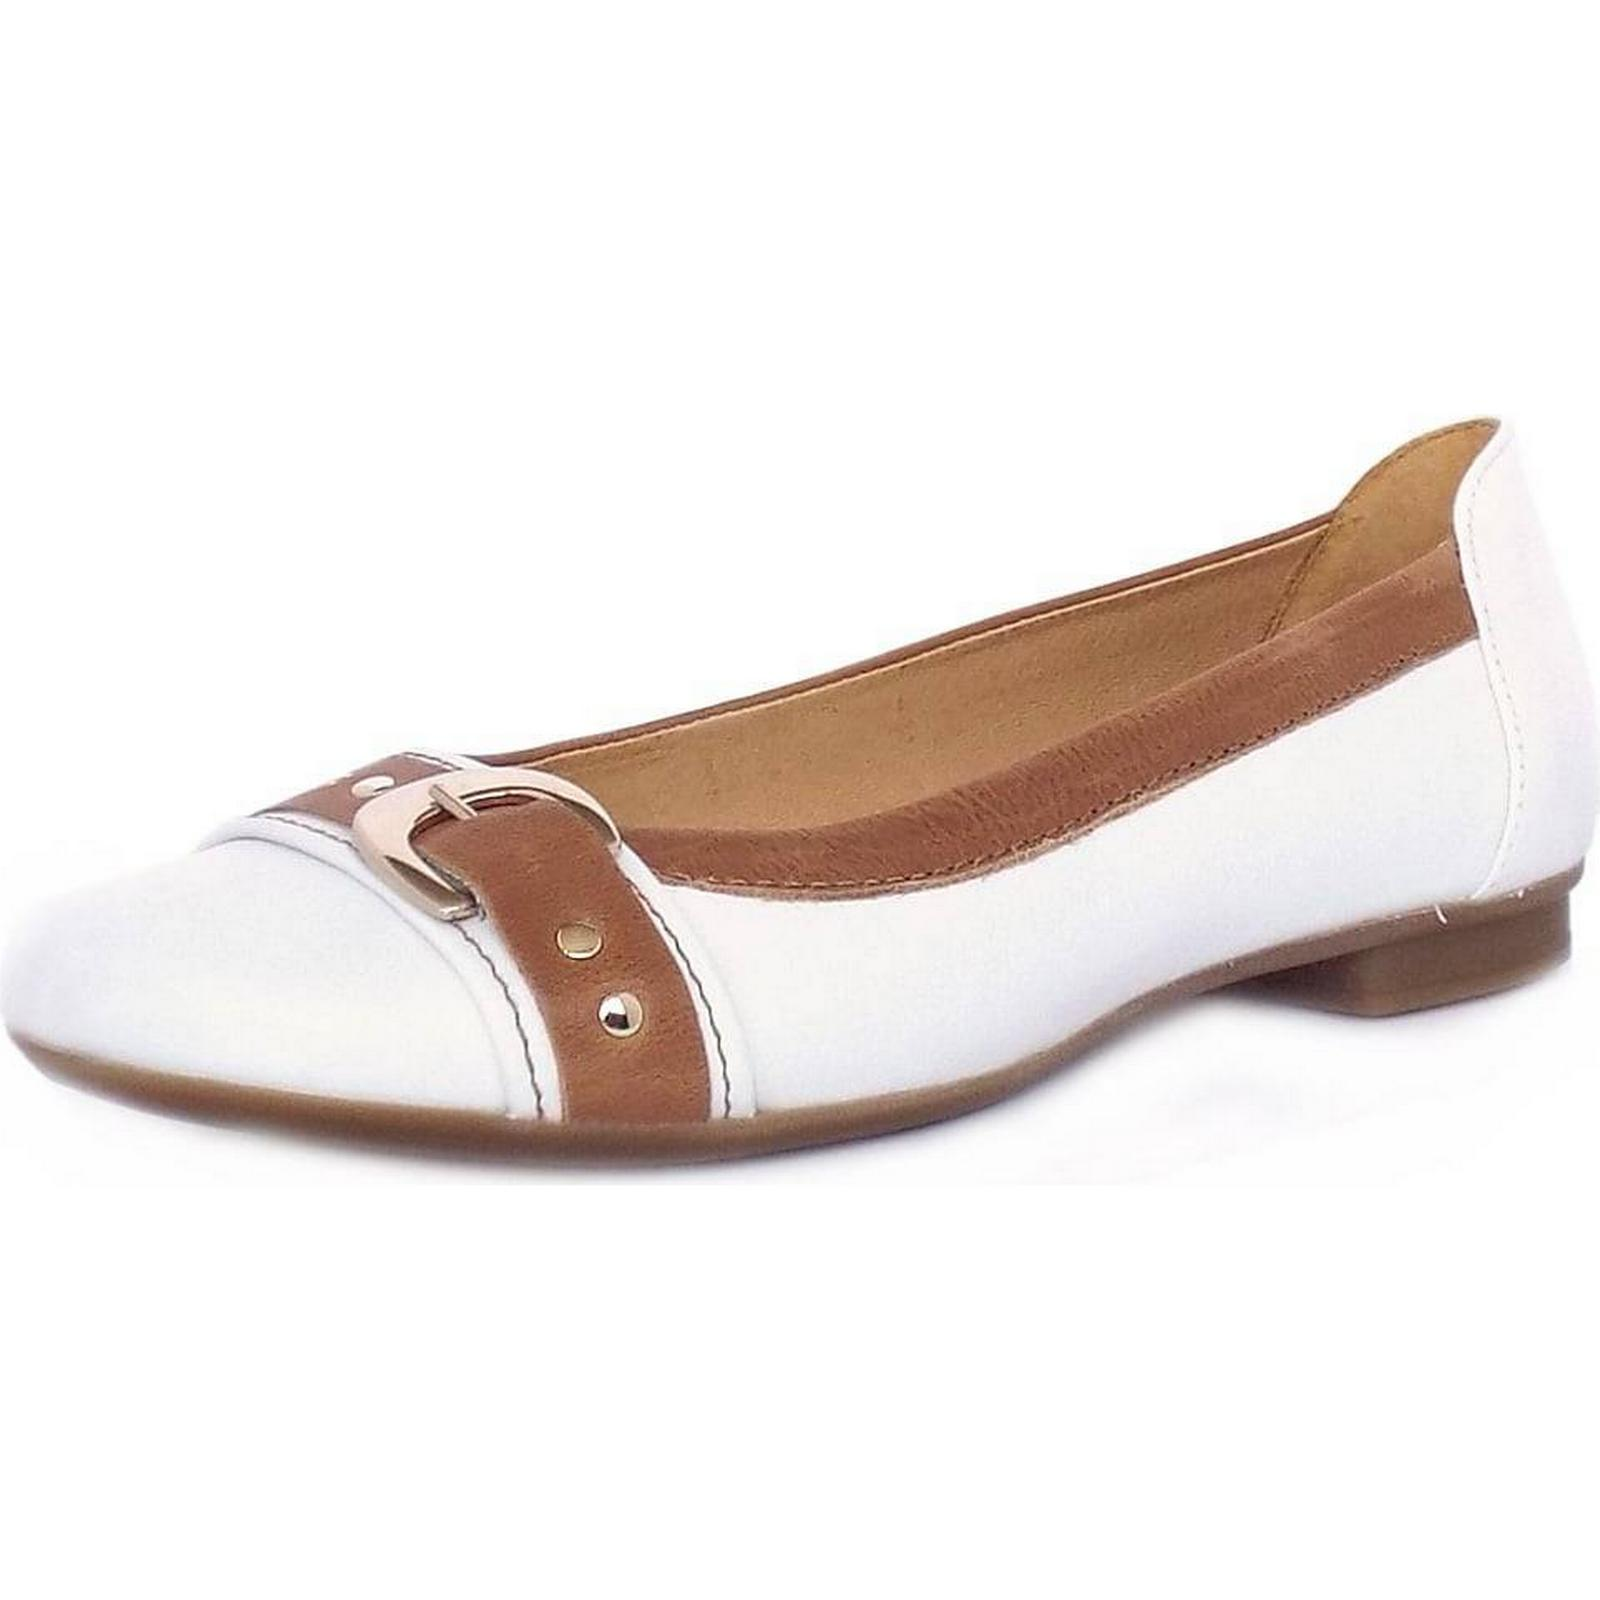 Gabor INDIANA GABOR 20MM CASUAL WHITE PUMPS Size: 5, Colour: WHITE CASUAL 4fad43